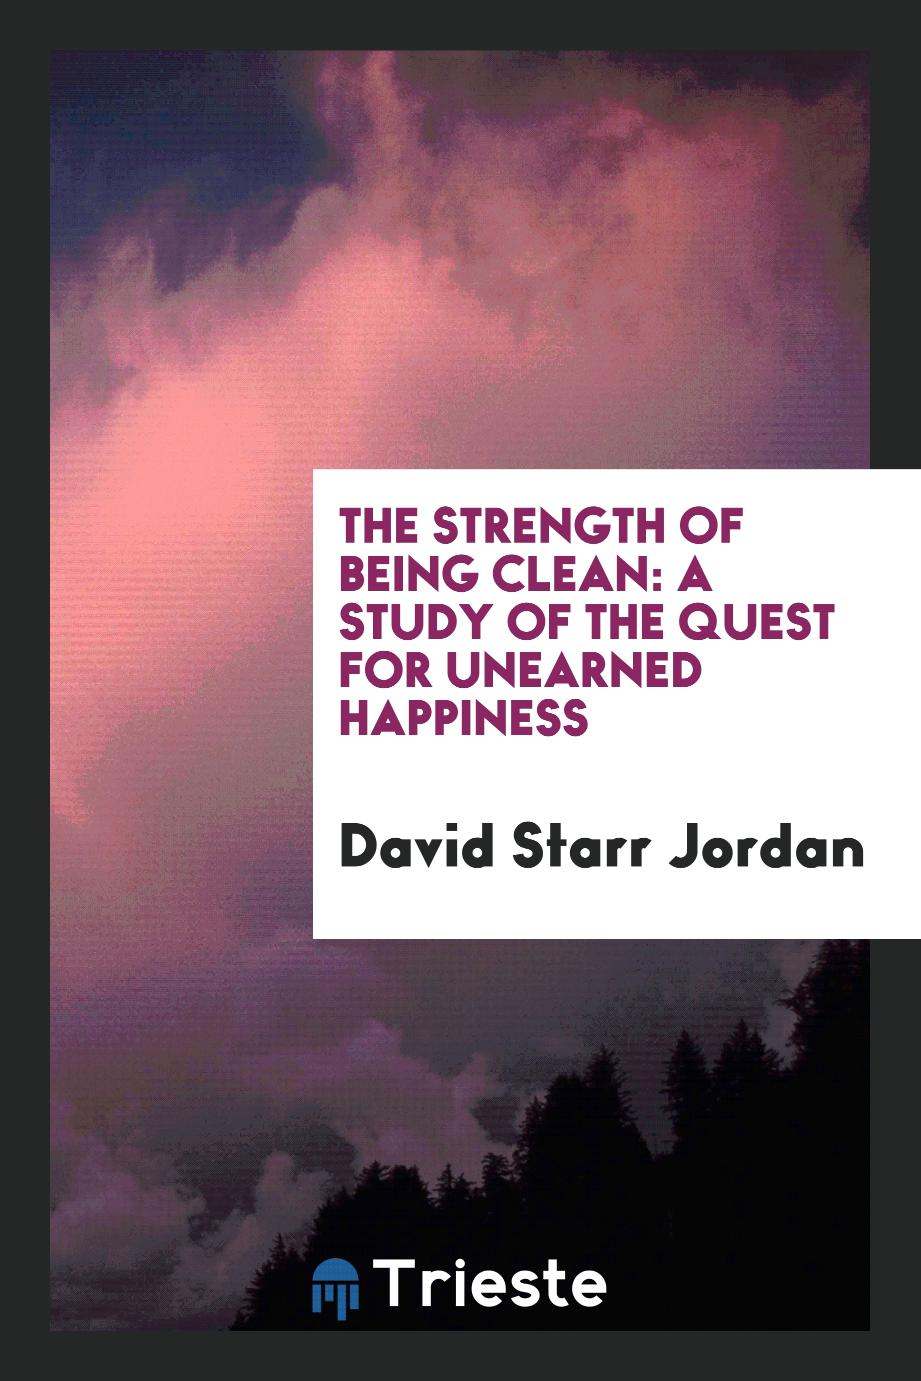 The Strength of Being Clean: A Study of the Quest for Unearned Happiness